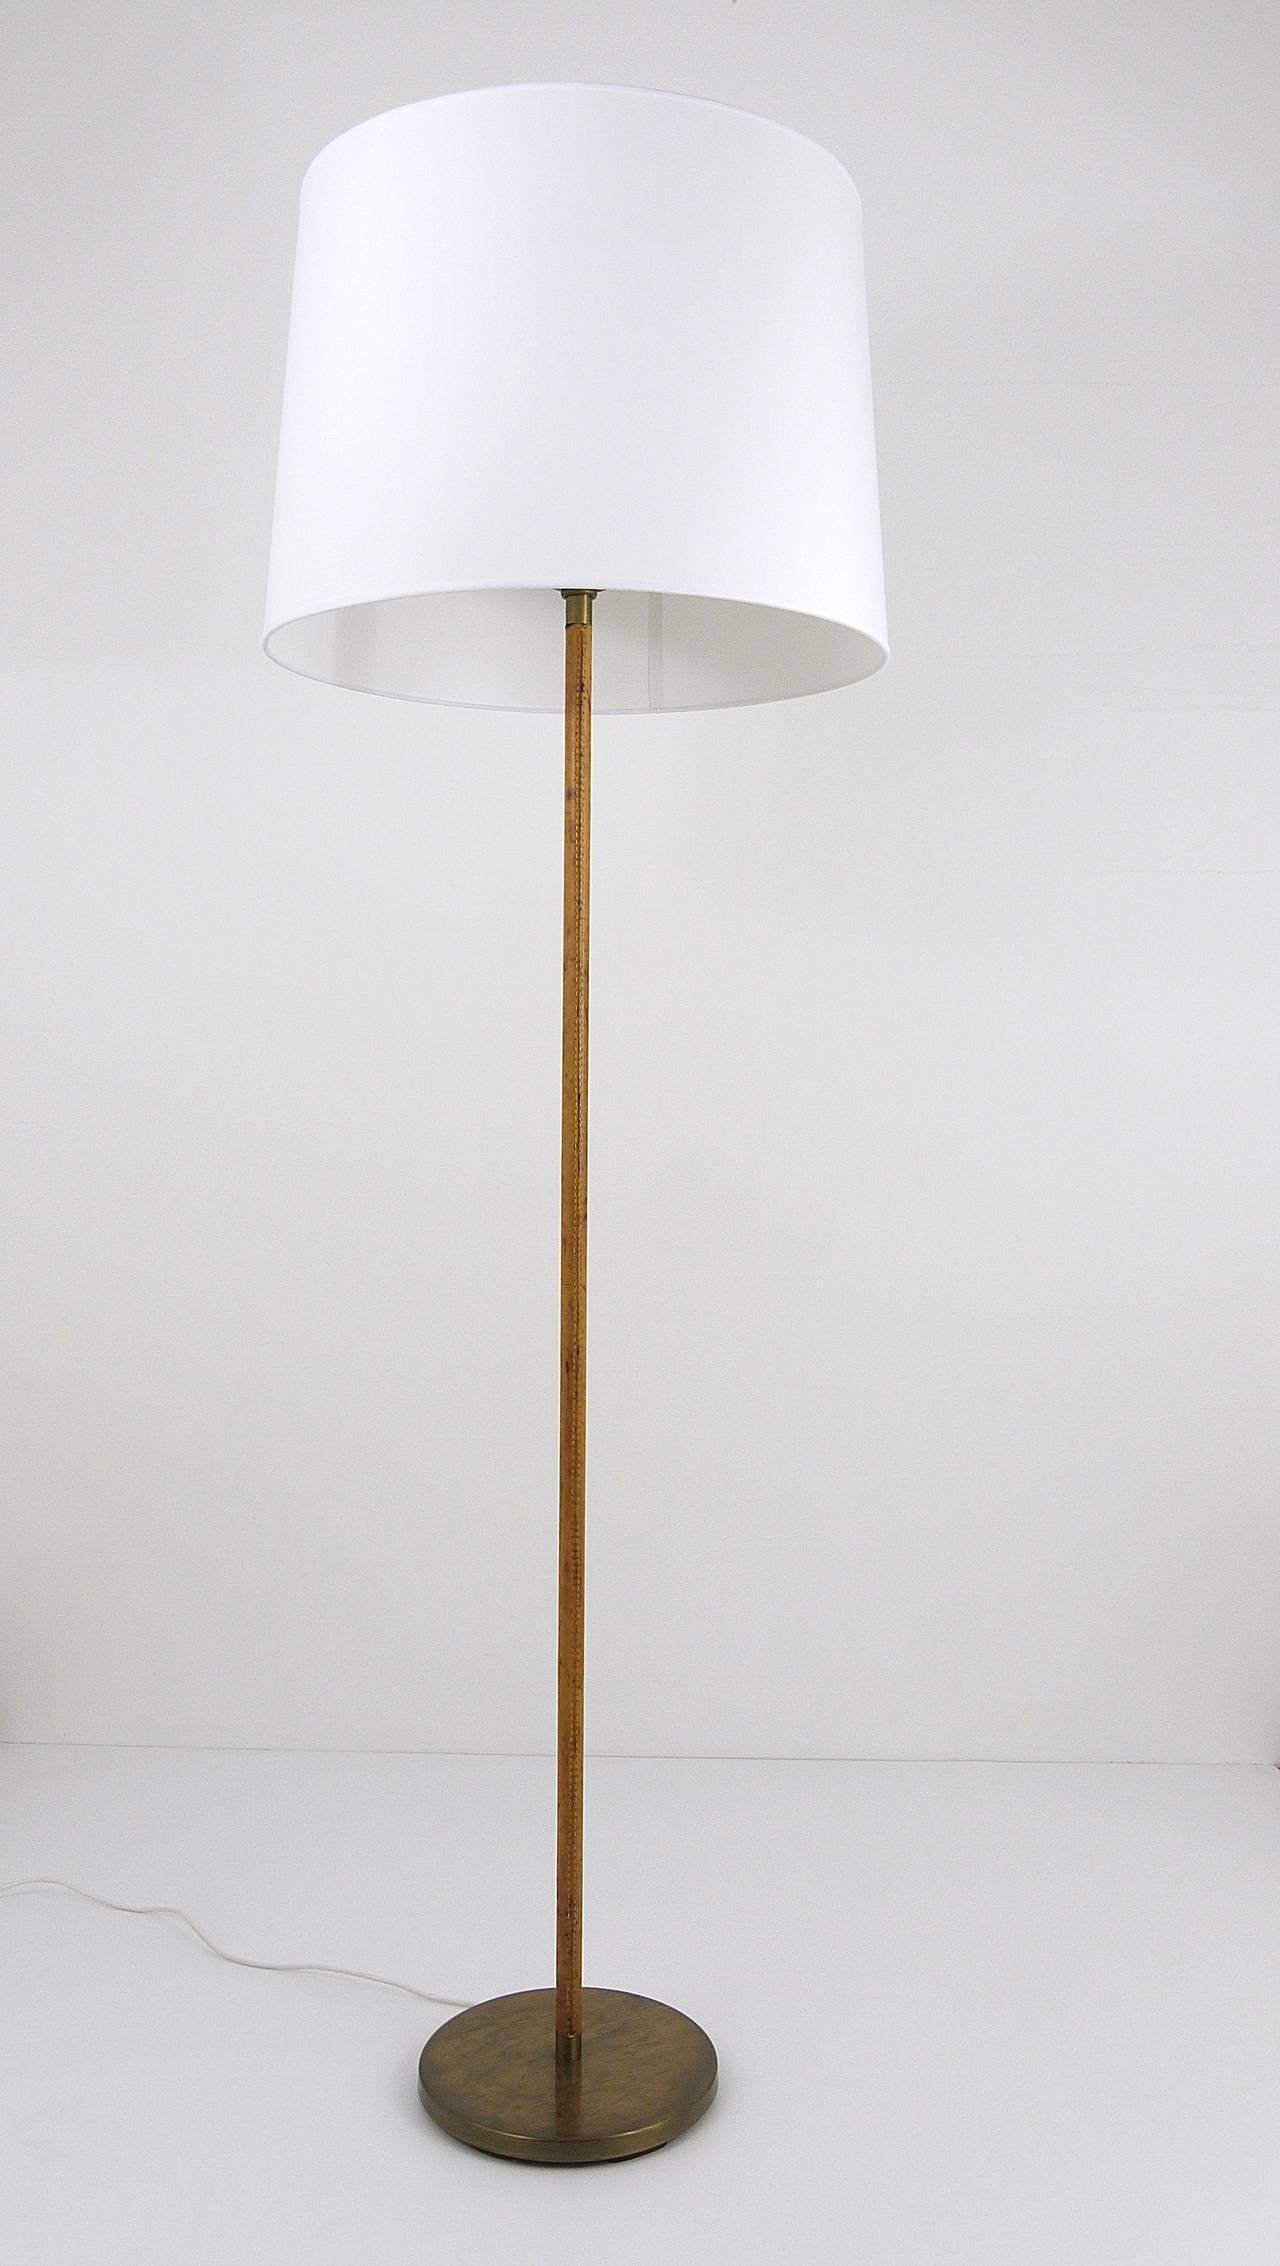 austrian leather brass height adjustable floor lamp 1960s at 1stdibs. Black Bedroom Furniture Sets. Home Design Ideas